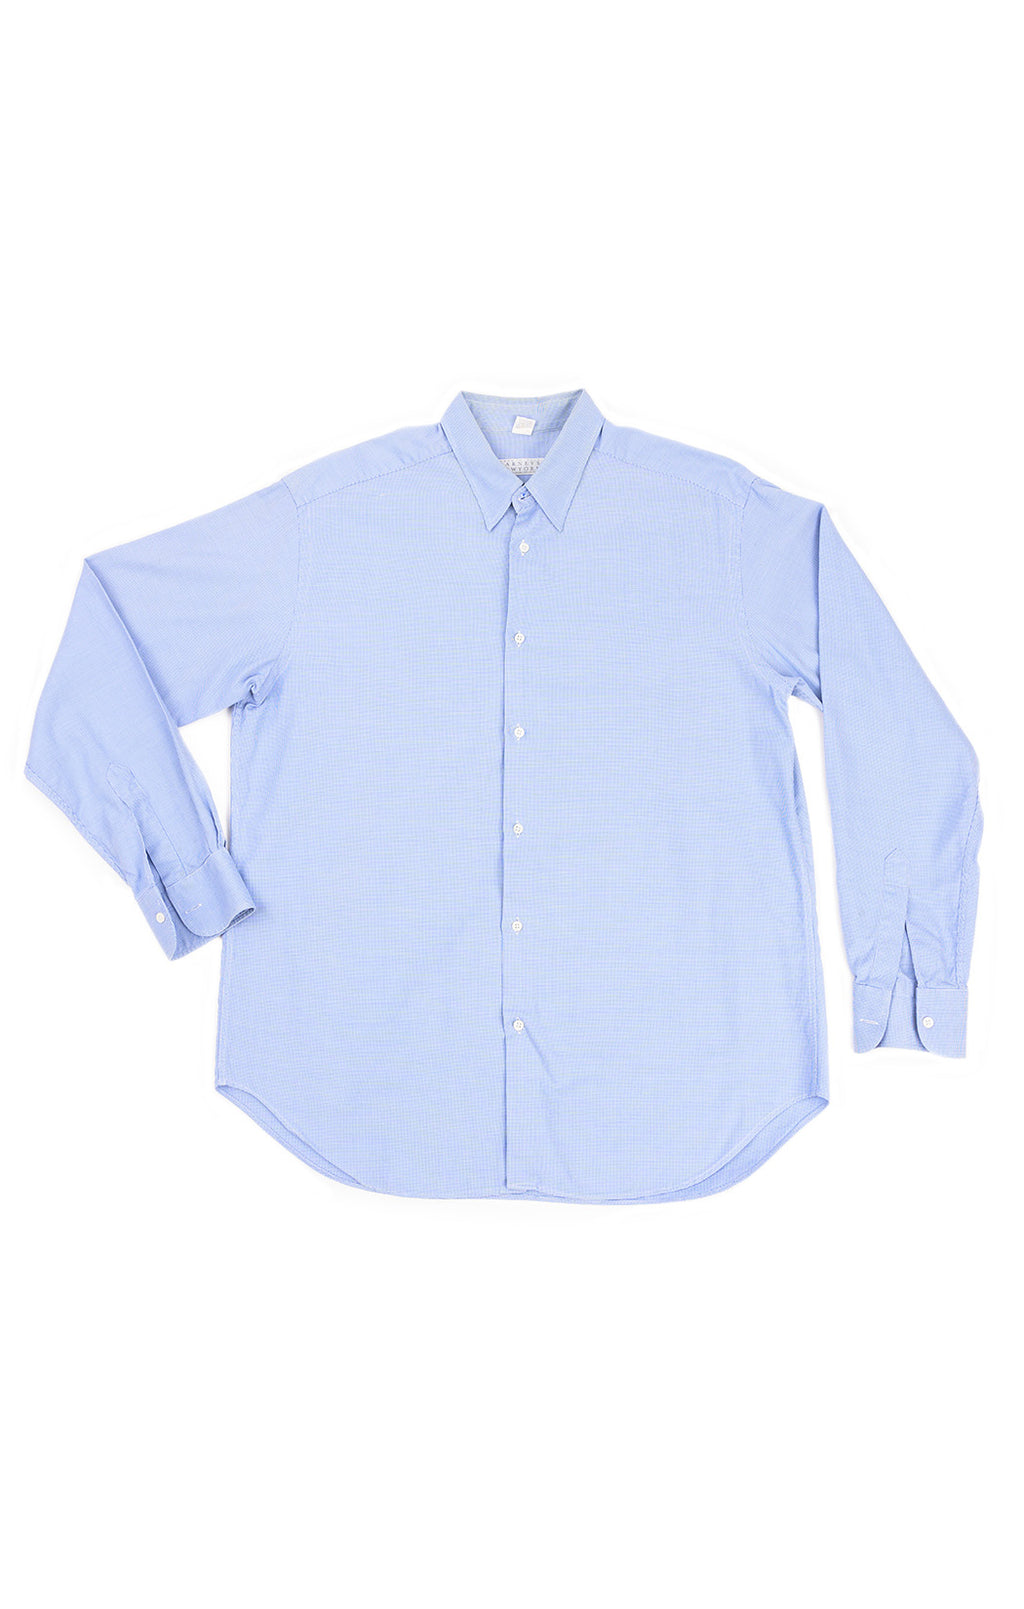 BARNEYS  Shirt Size: 16.5 L